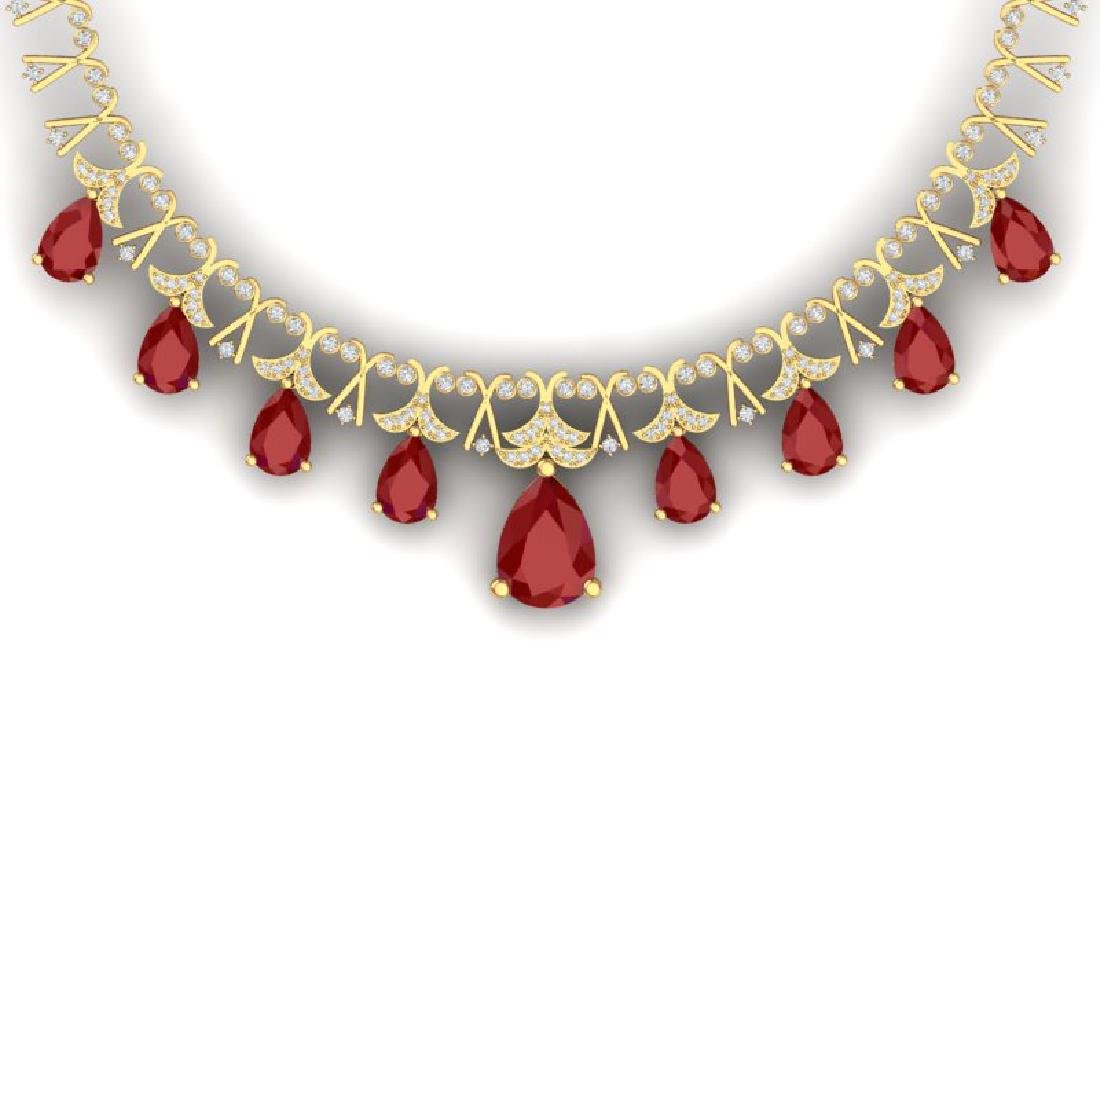 56.94 CTW Royalty Ruby & VS Diamond Necklace 18K Yellow